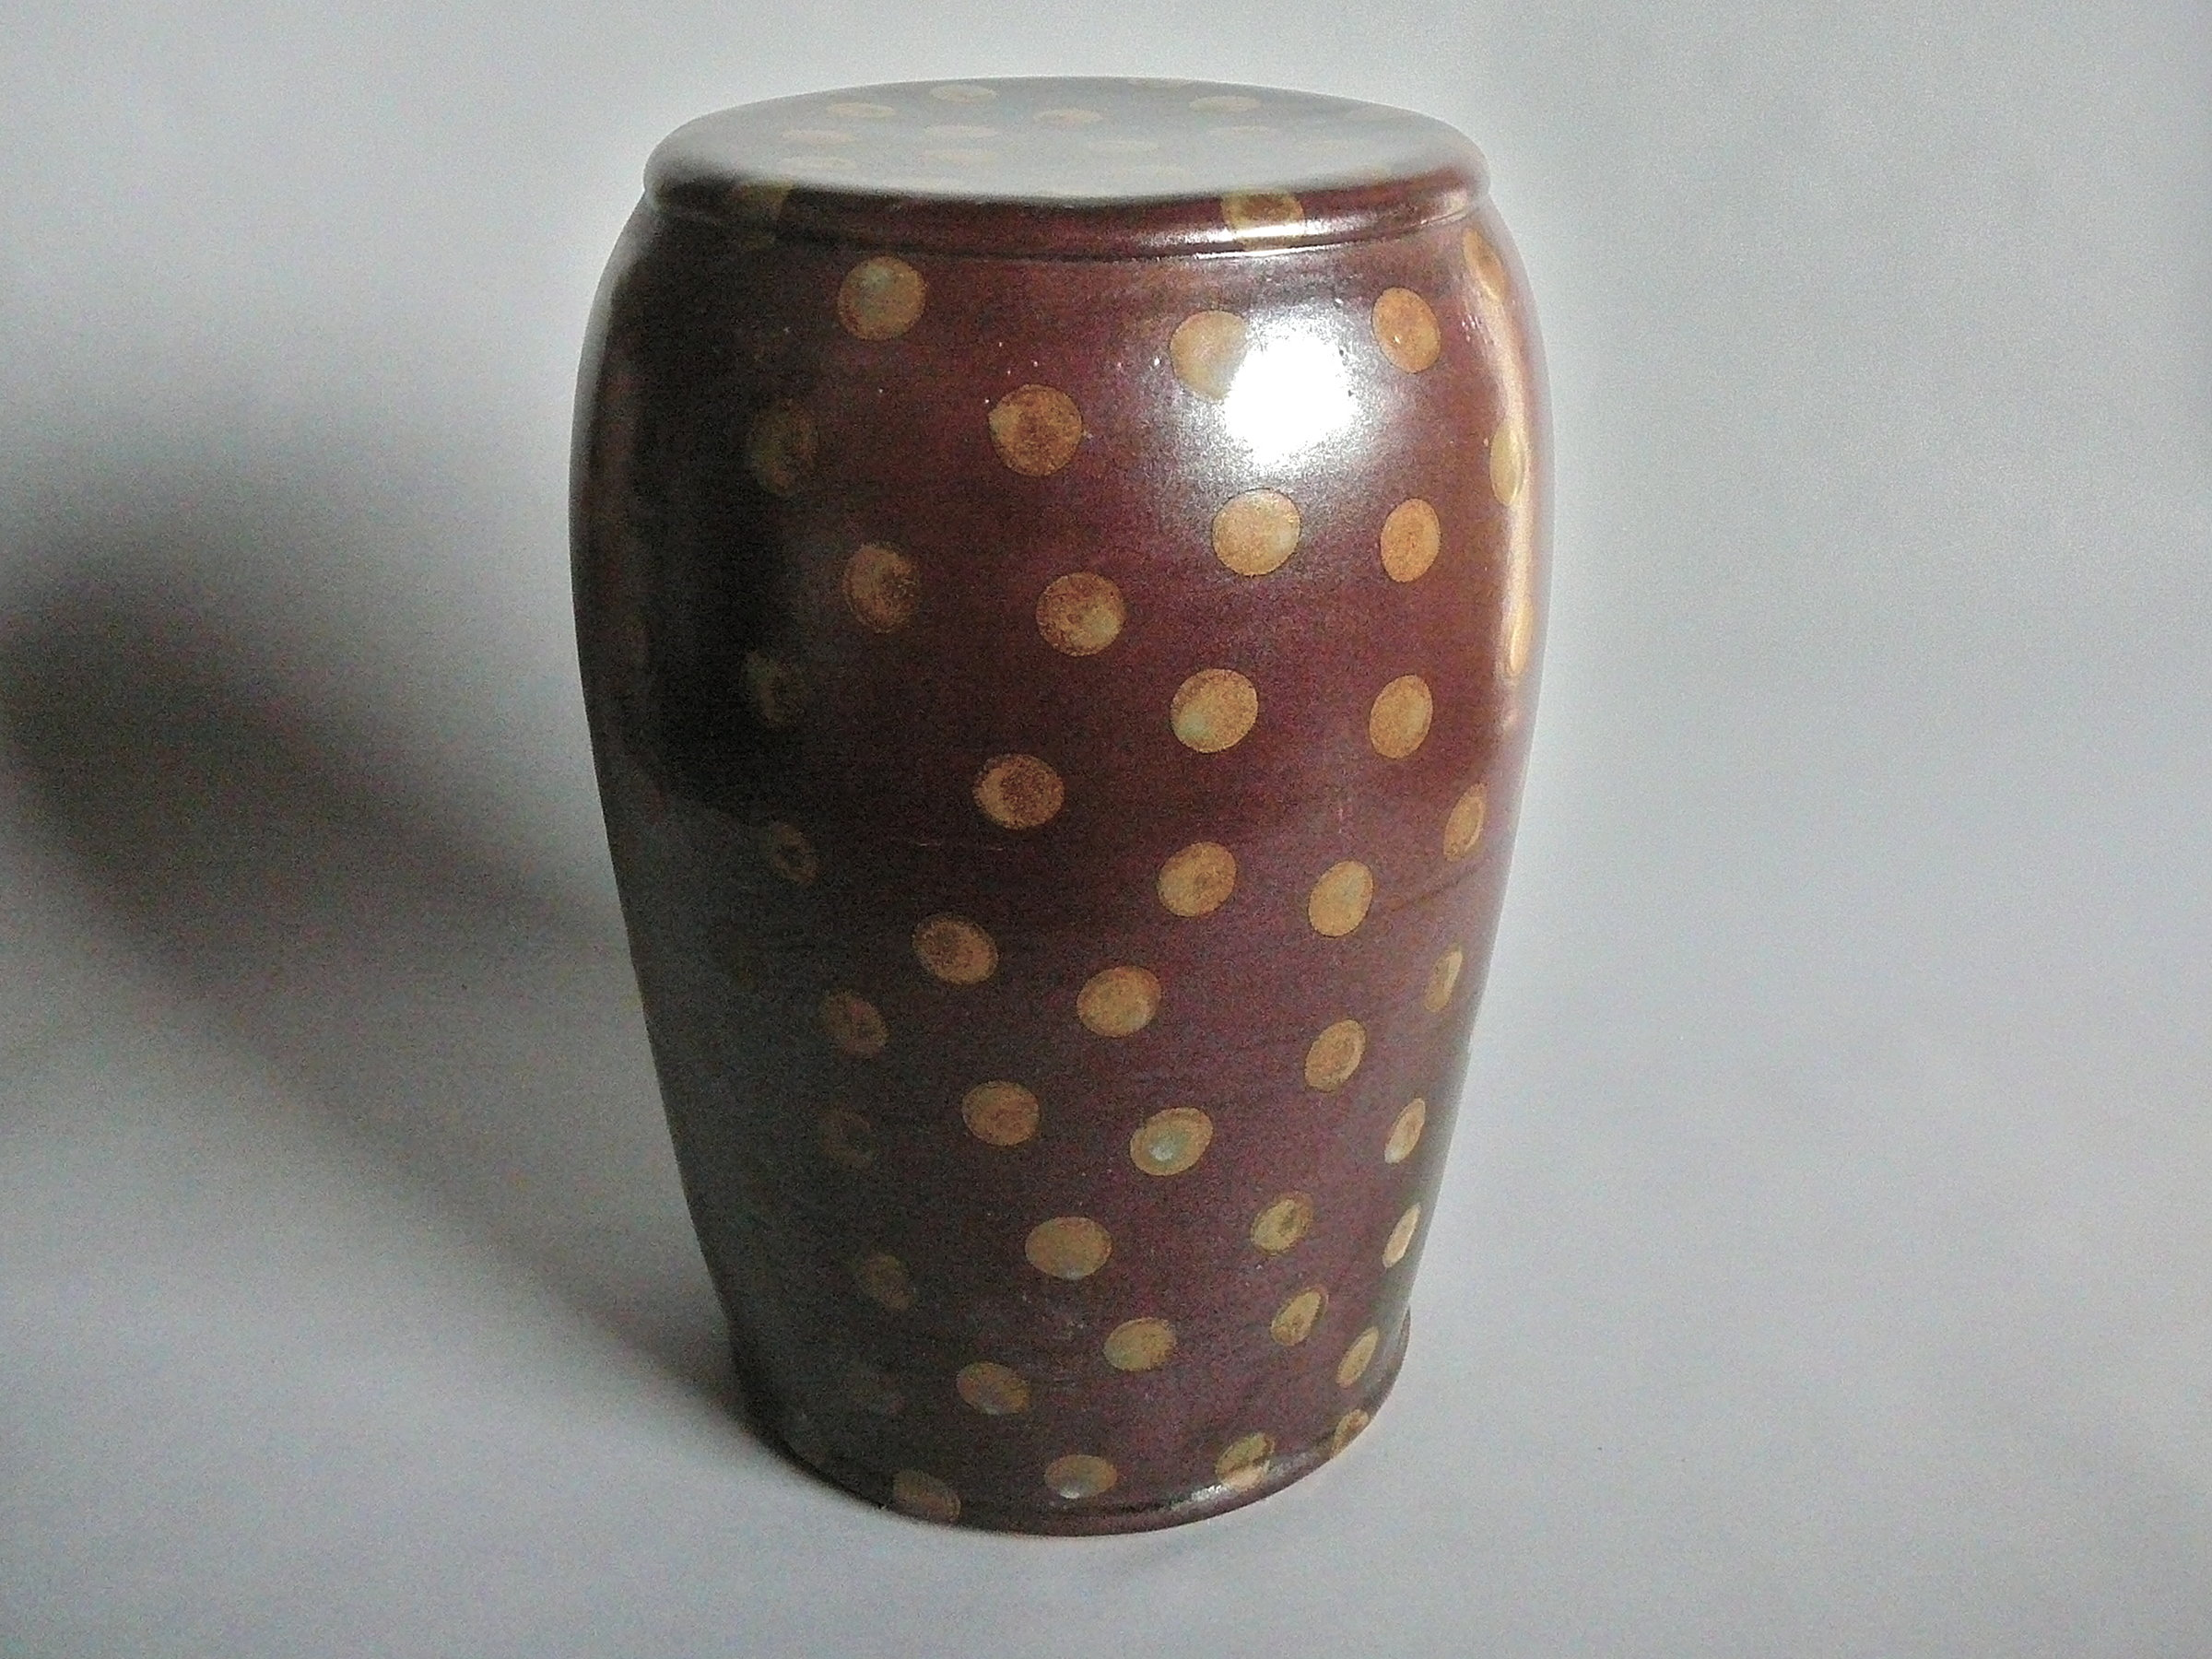 Garden Stool Temmoku Glaze And Small Gold Polka Dots By